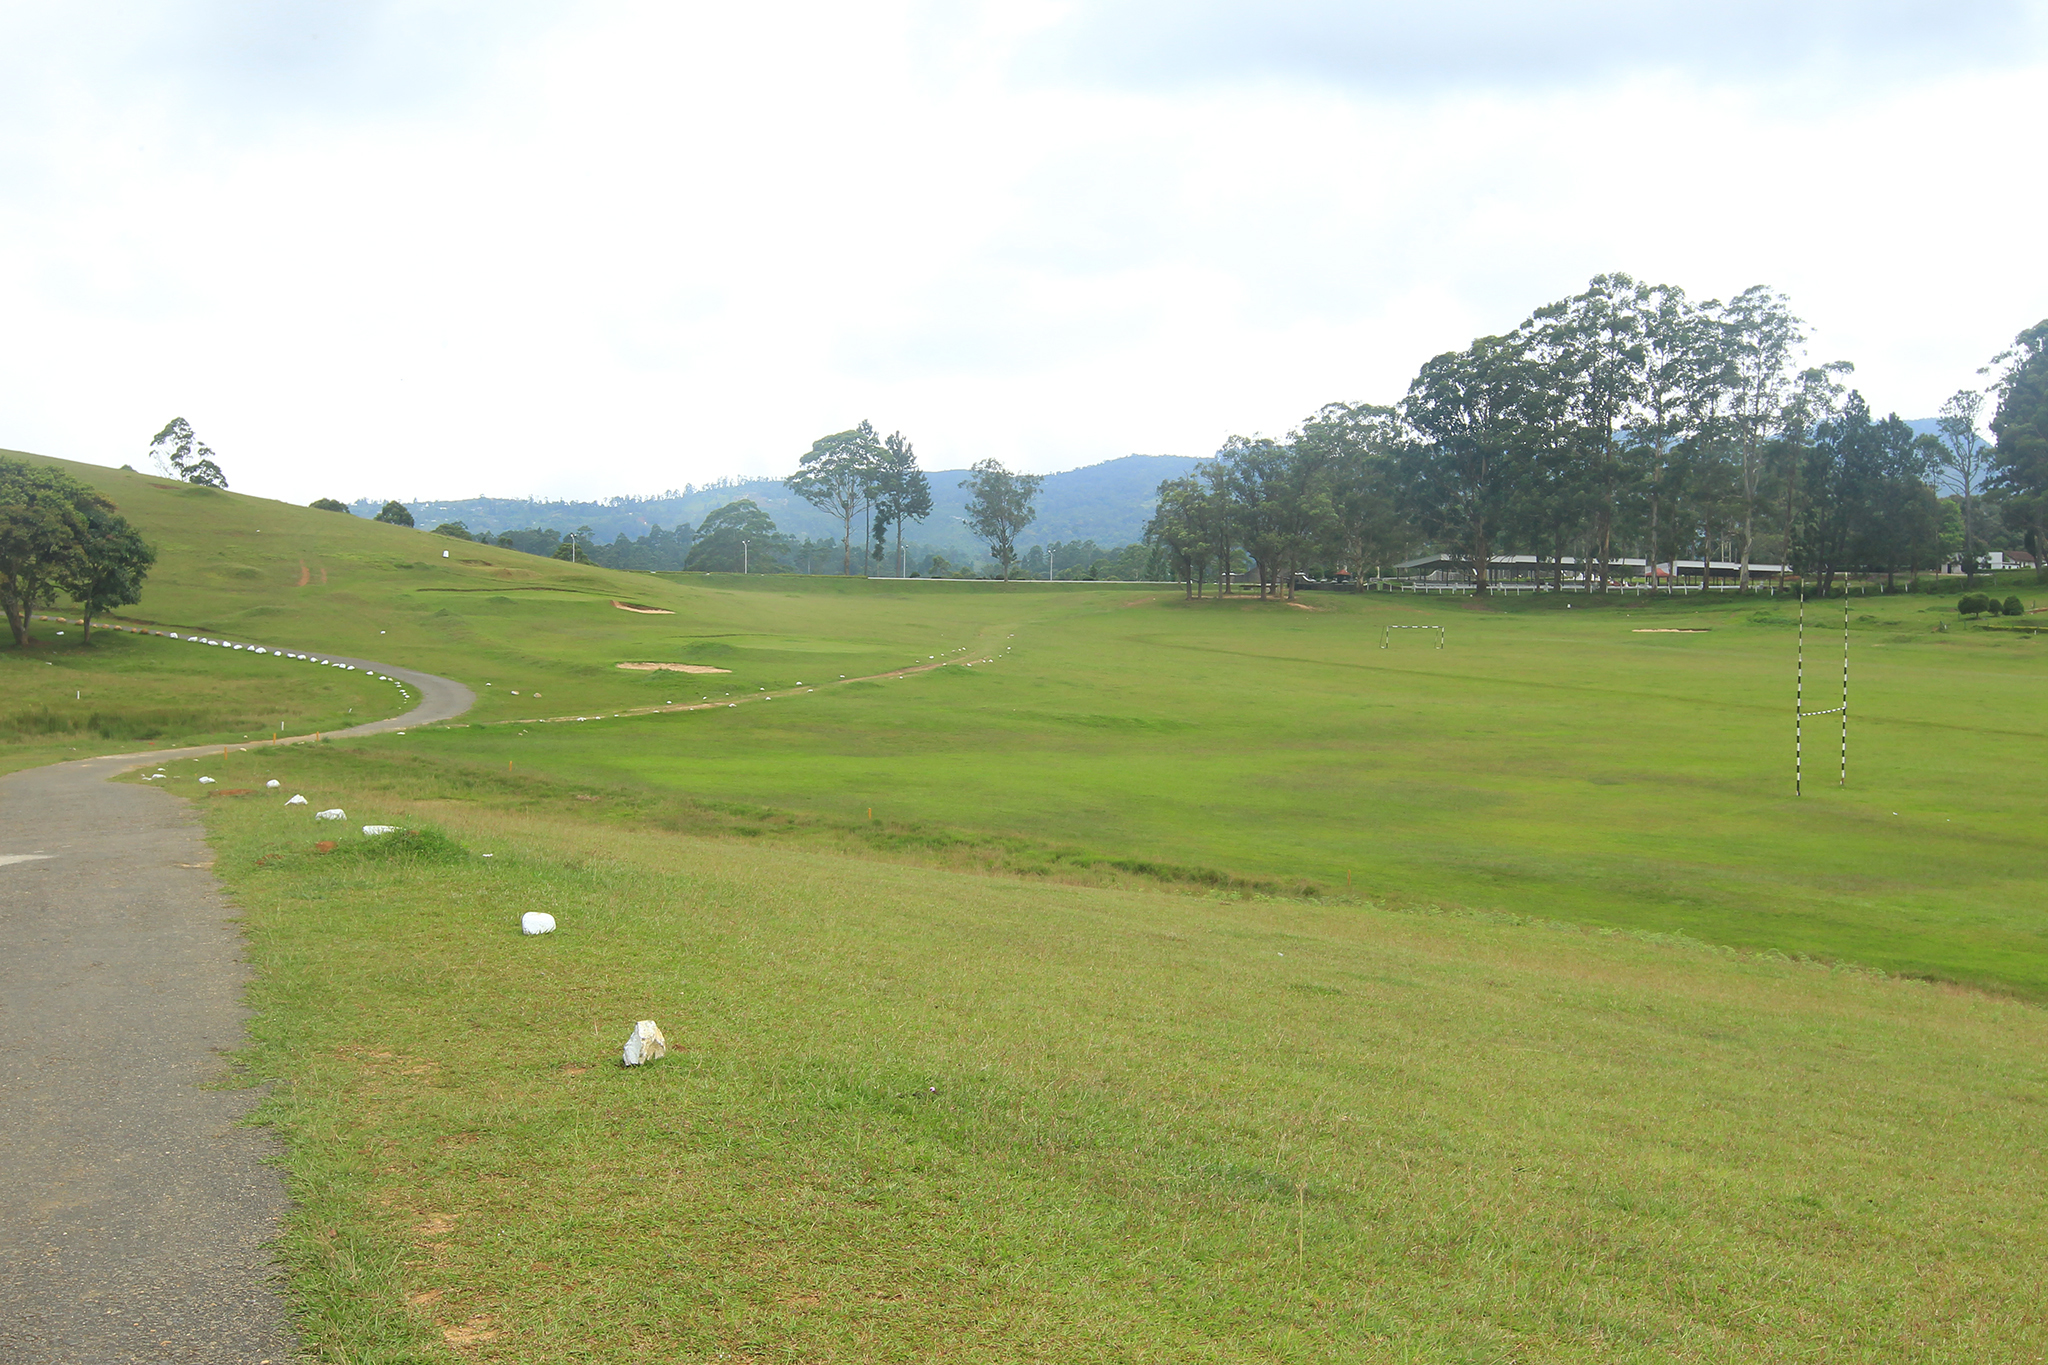 Diyatalawa Golf Course is a golf course in Sri Lanka